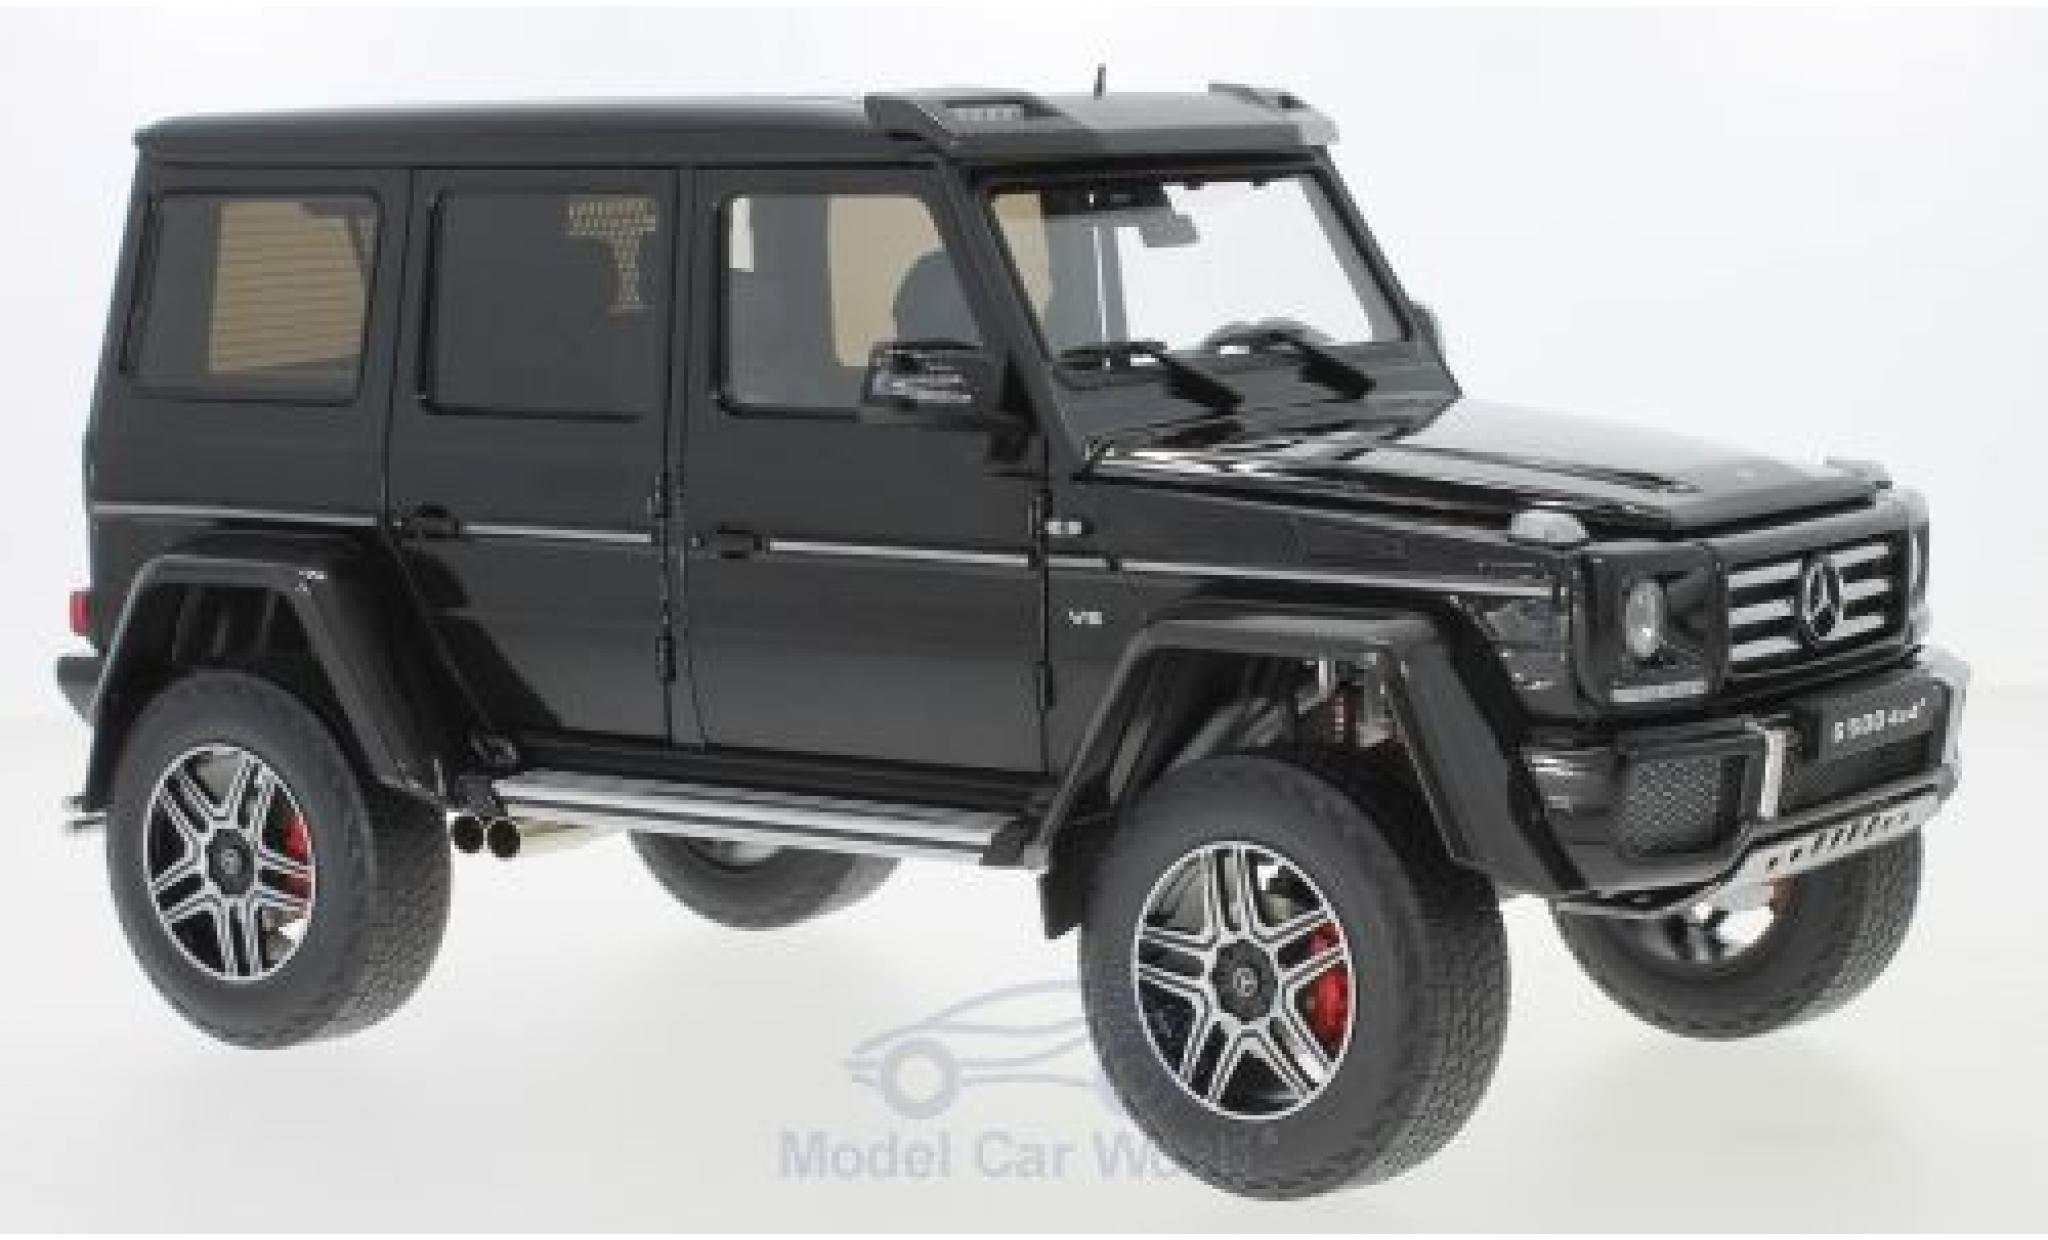 Mercedes Classe G 1/18 Almost Real G500 4x4 noire